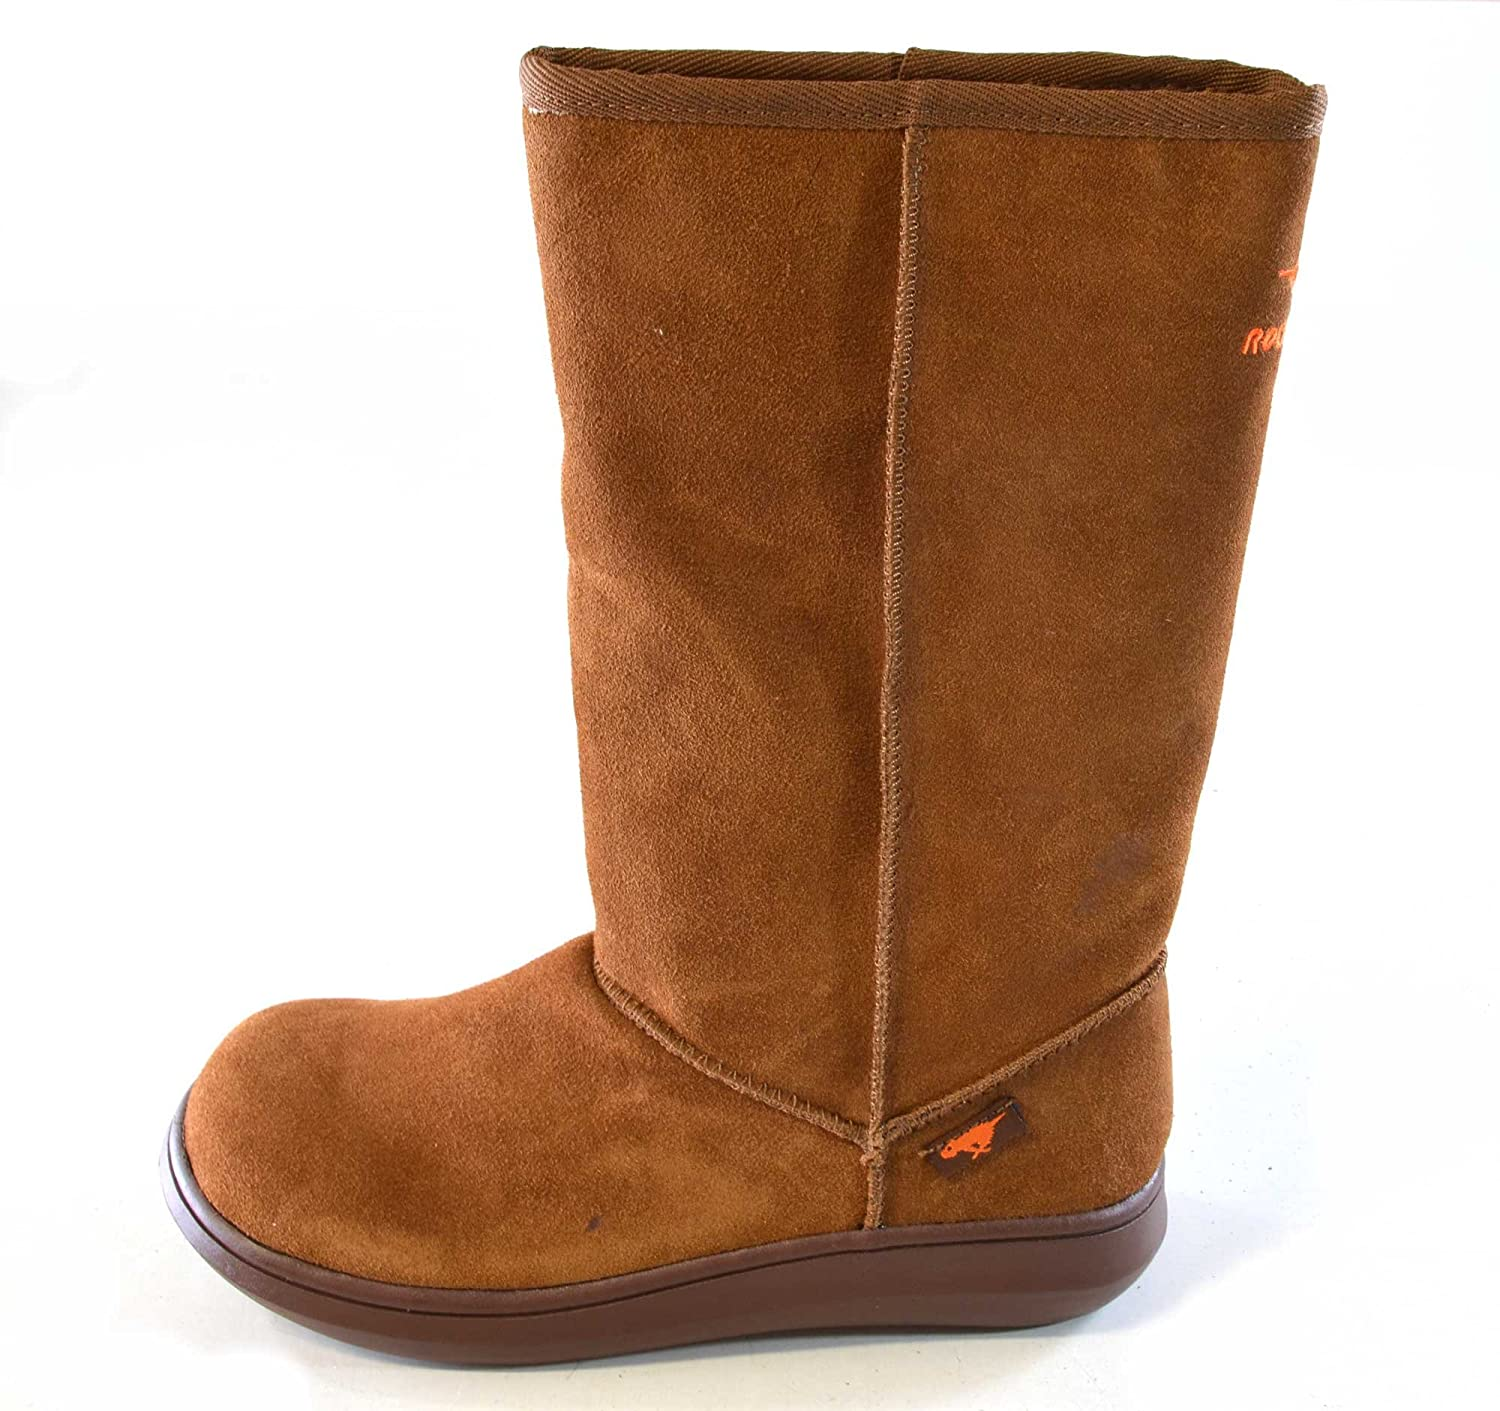 Rocket Dog Sugar Daddy Calf Length Suede Boots with Cozy Fur Lining (5,  Chestnut): Amazon.co.uk: Shoes & Bags